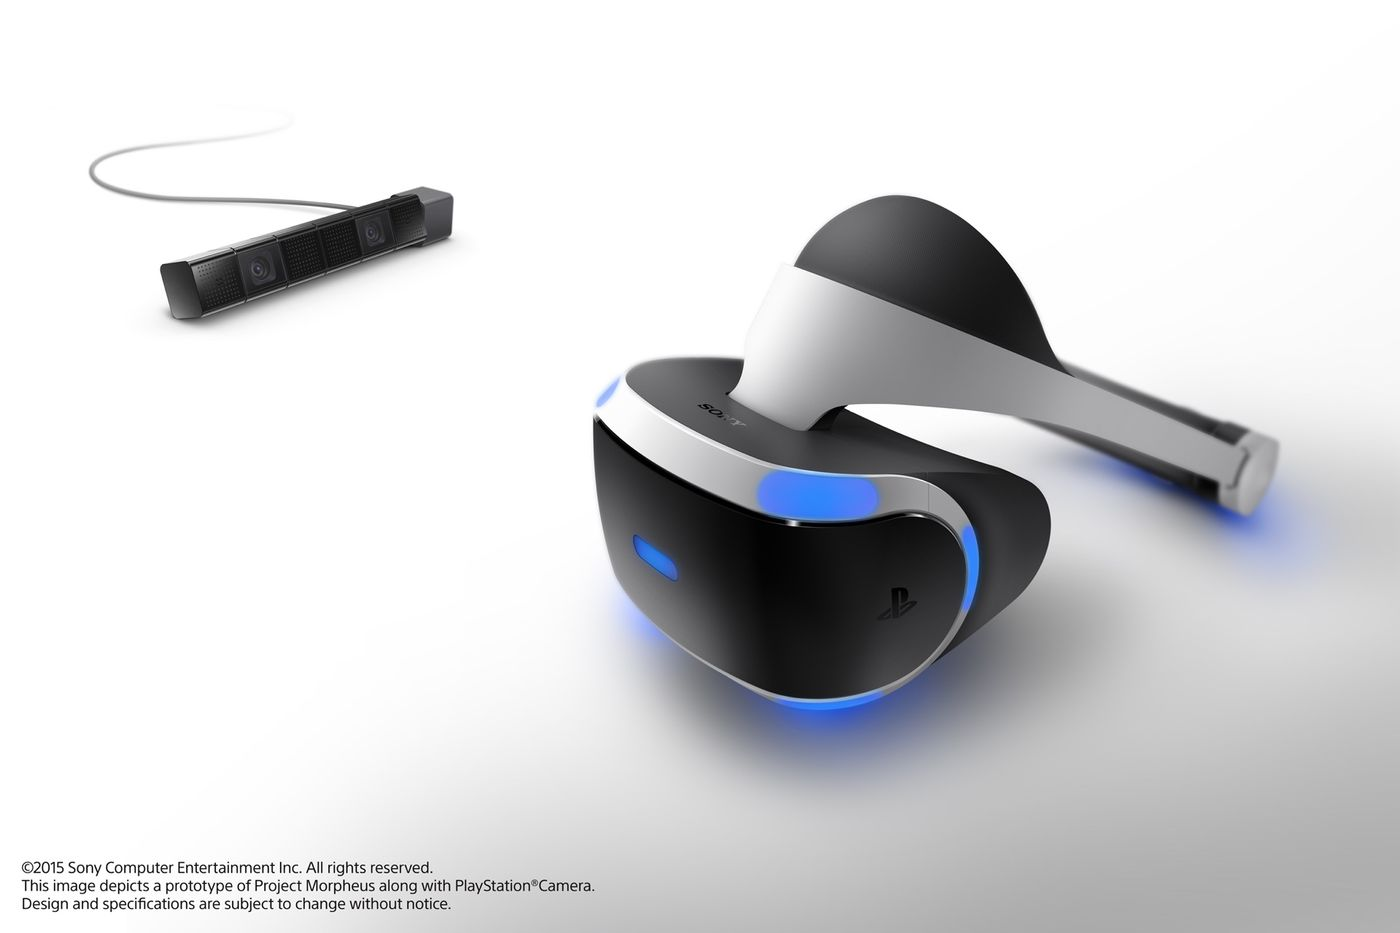 Prototype project morpheus